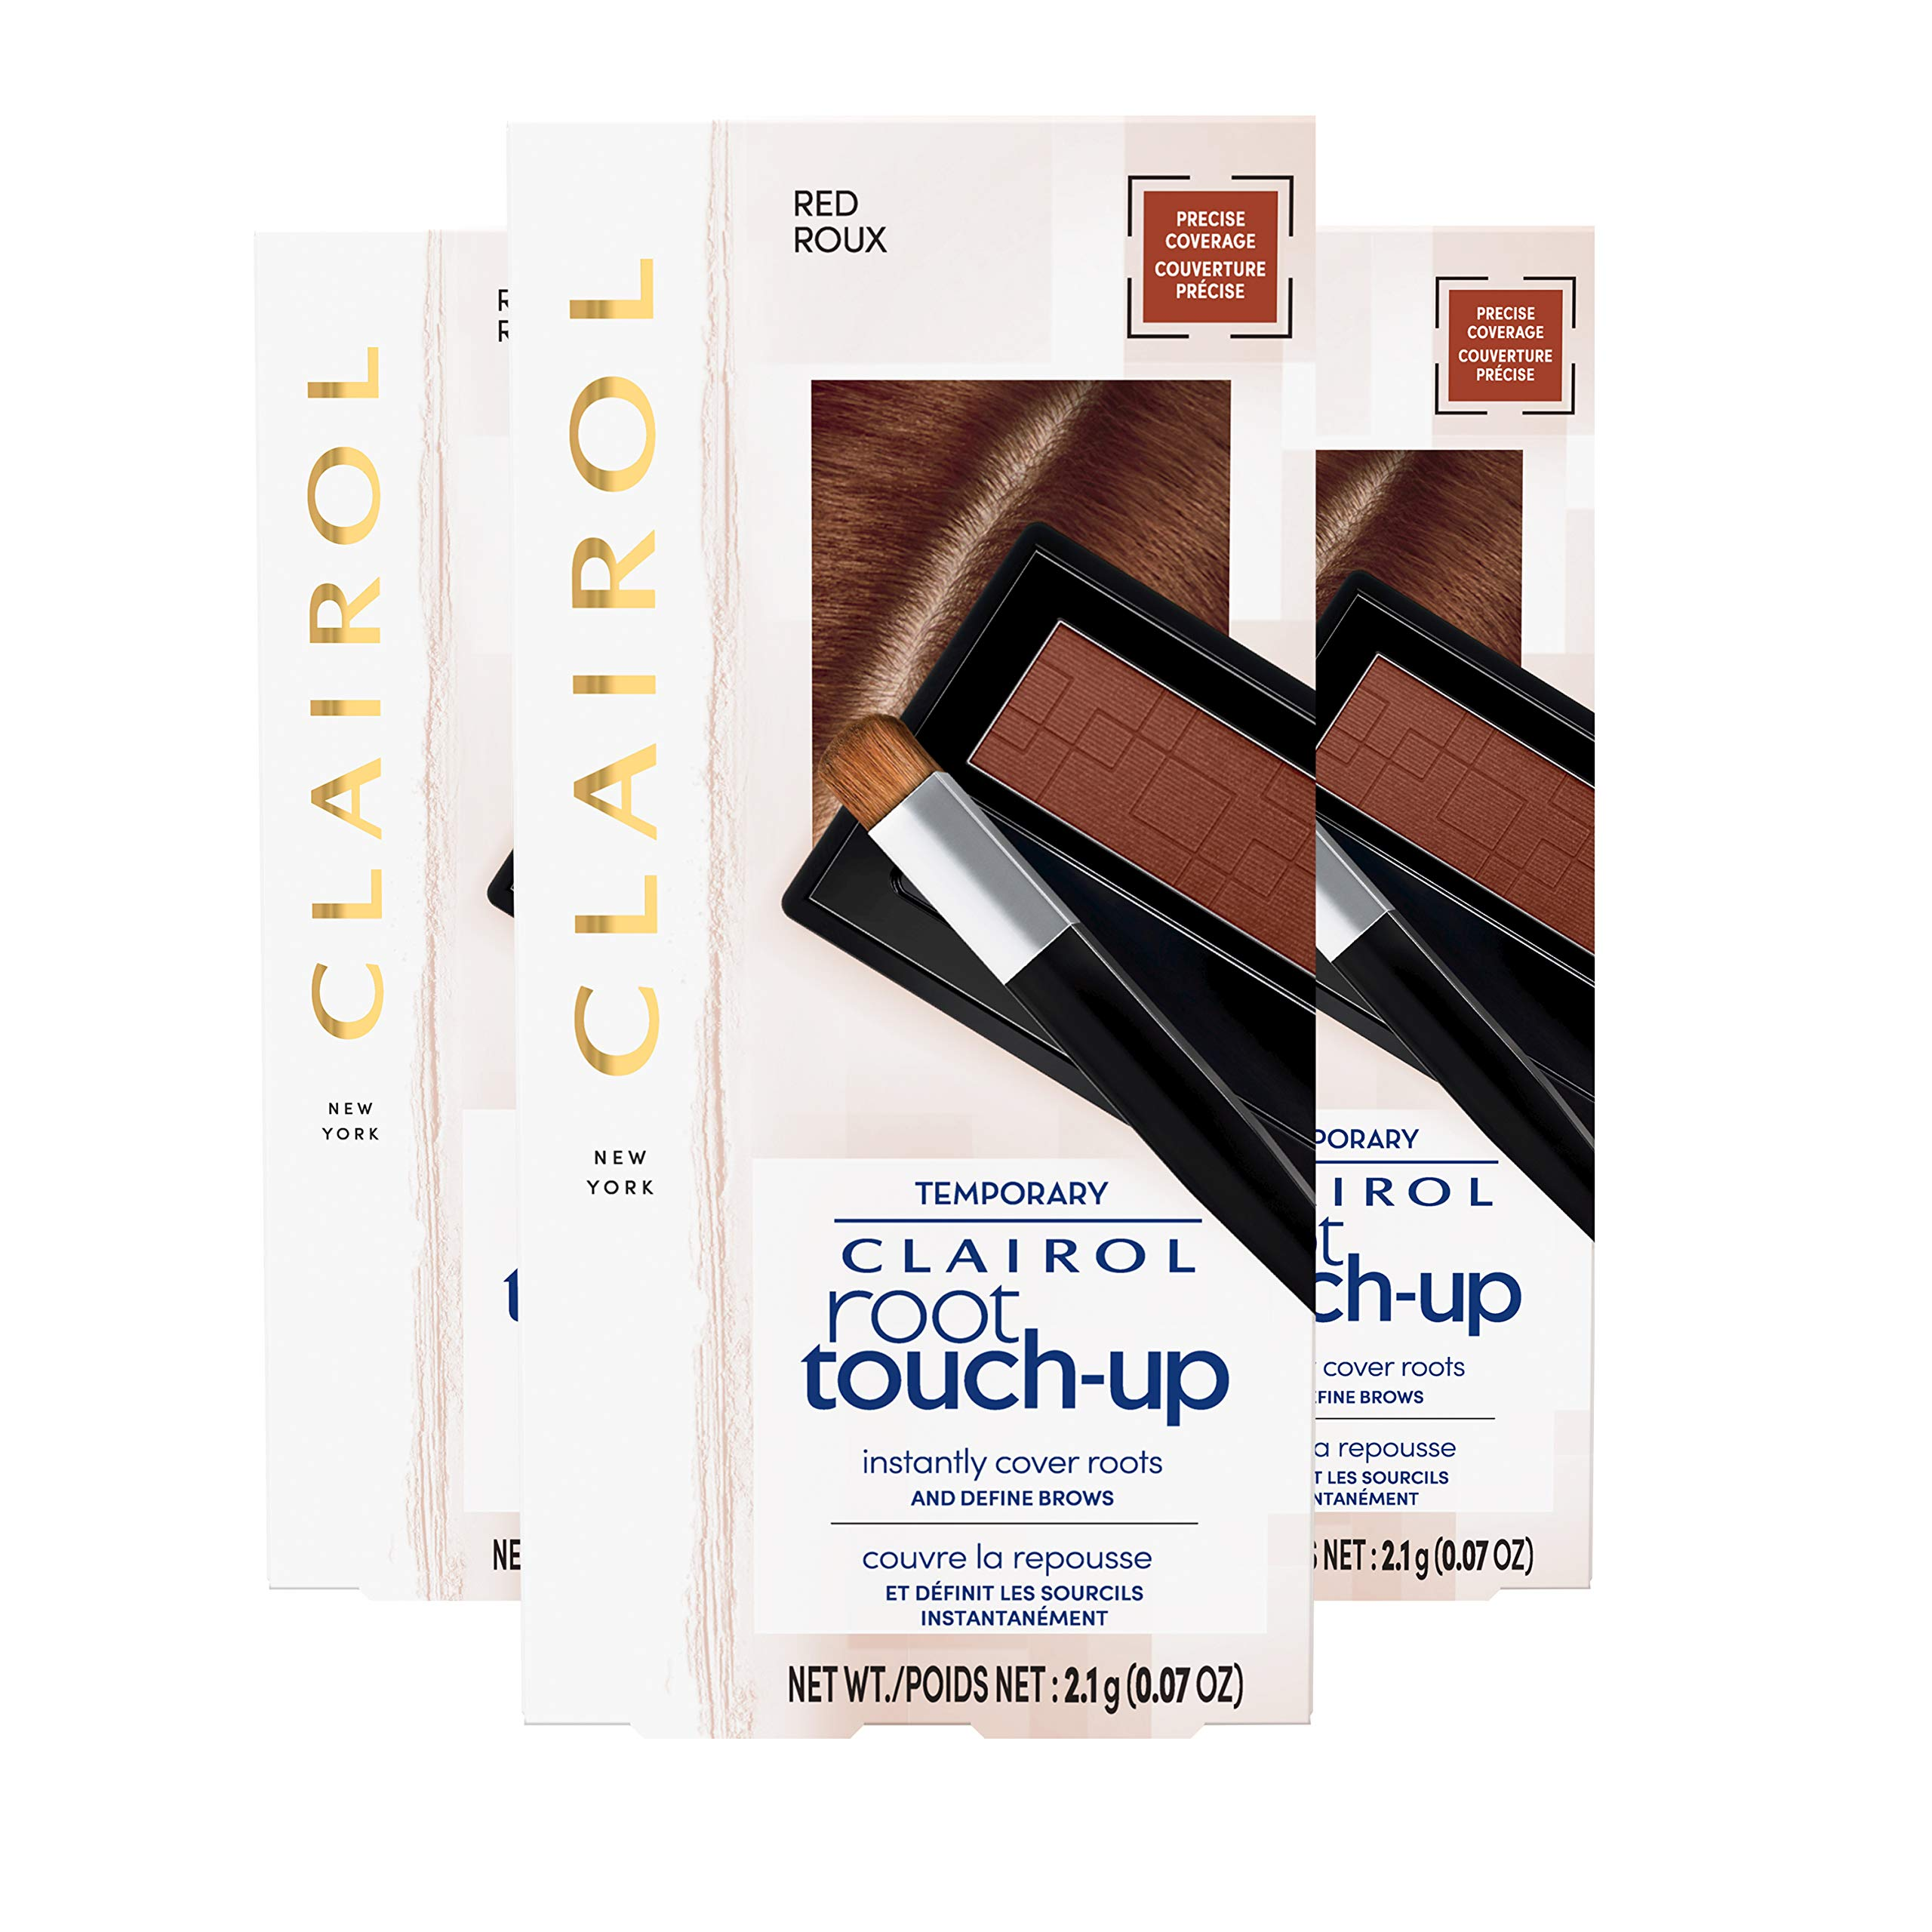 Clairol Root Touch-Up Concealing Powder, Red, 3 Count